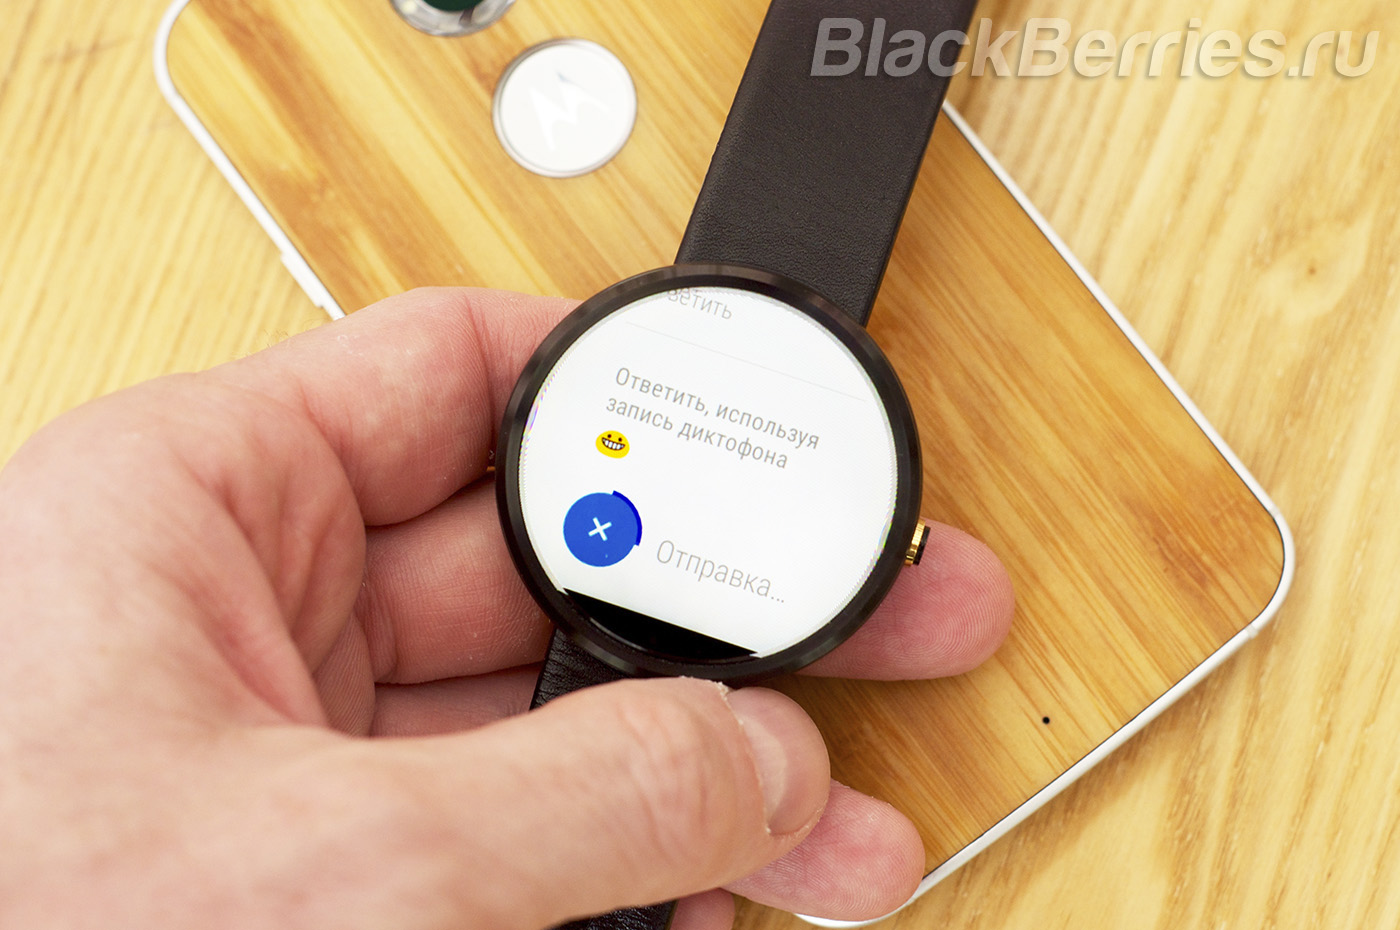 BlackBerry-BBM-Android-Wear-07